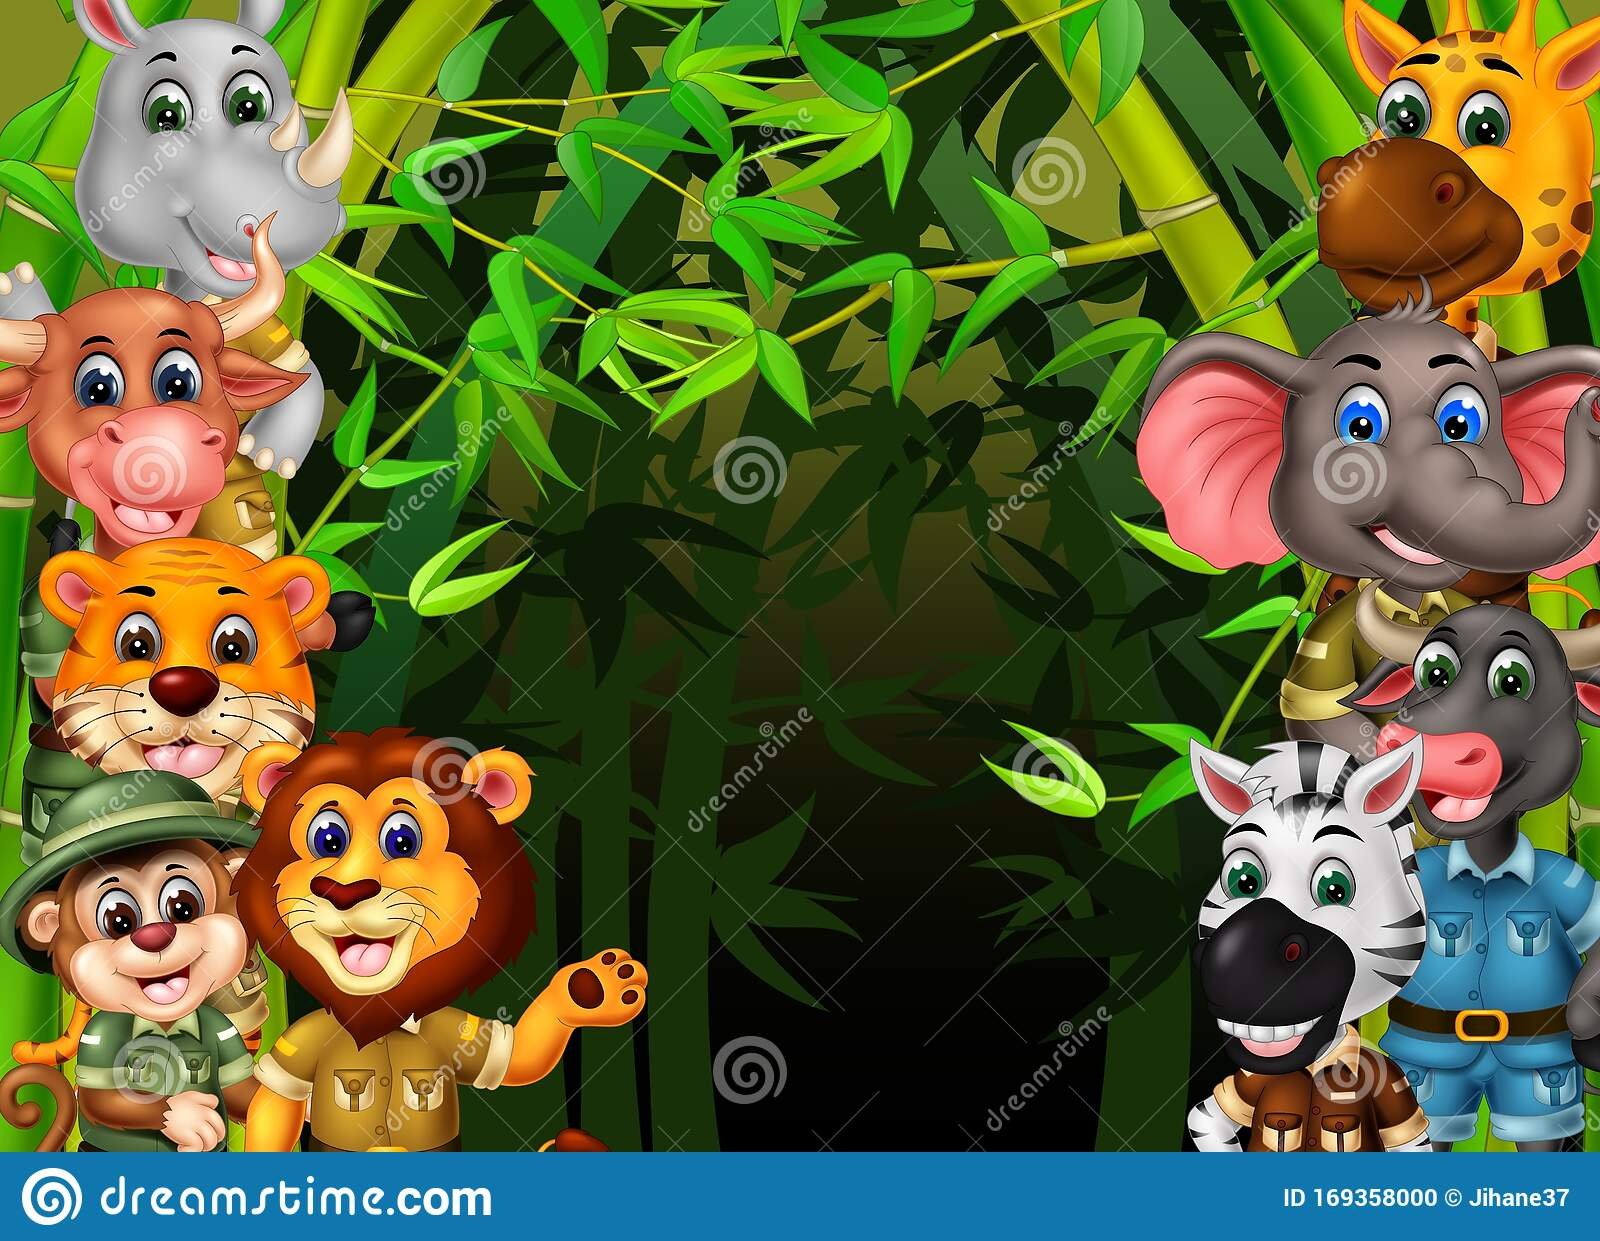 5 861 Animals Cartoon Photos Free Royalty Free Stock Photos From Dreamstime